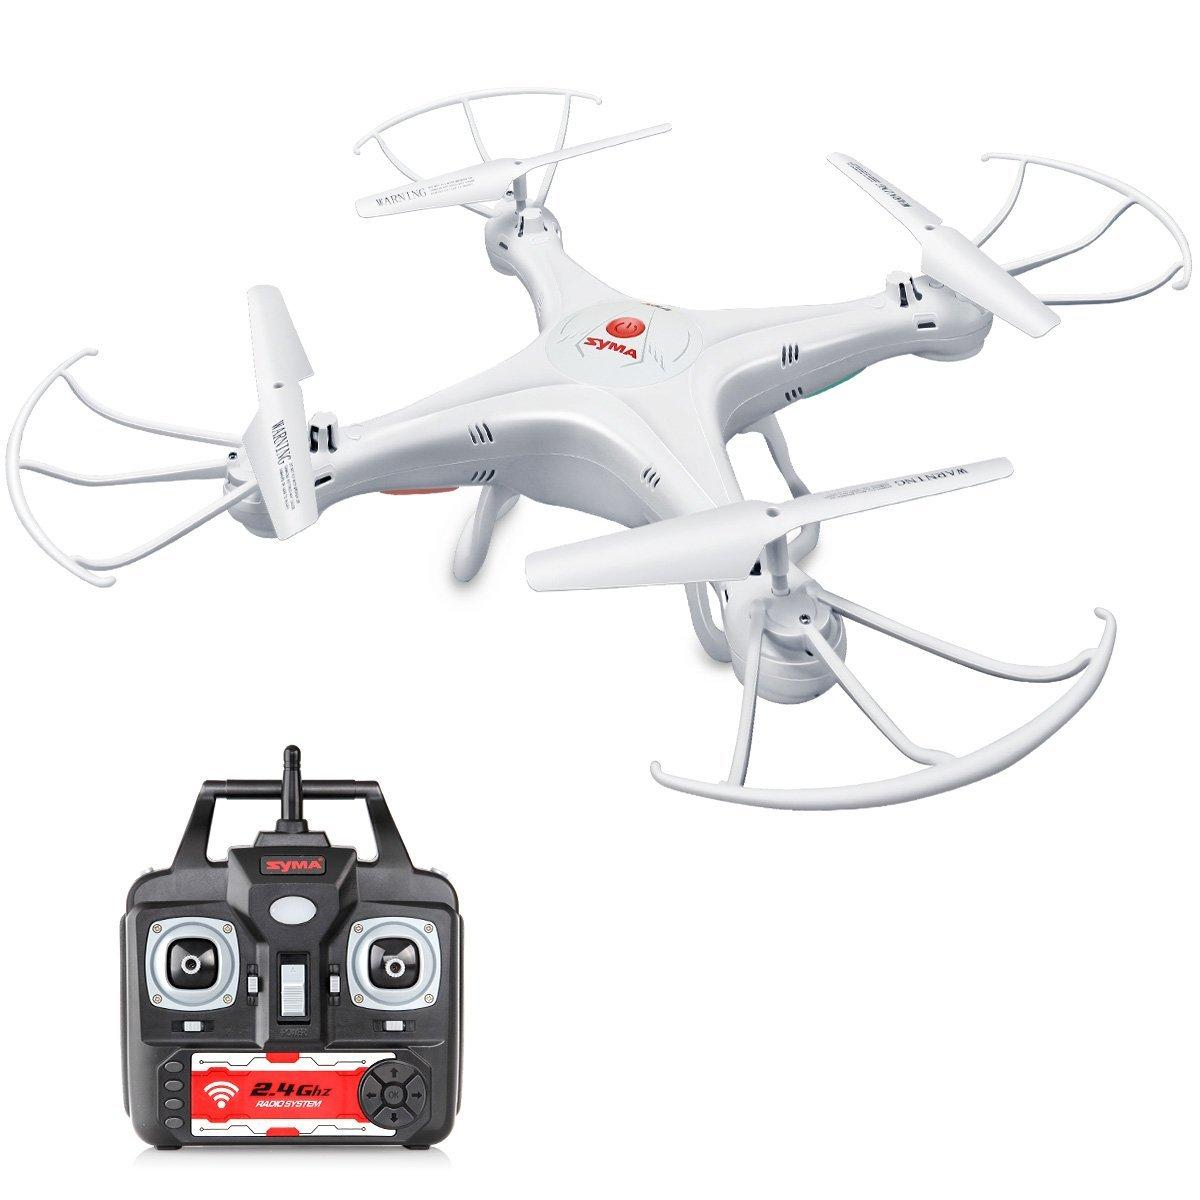 Syma X5A-1 2.4GHz 6-Axis Gyro RC Quadcopter Drone